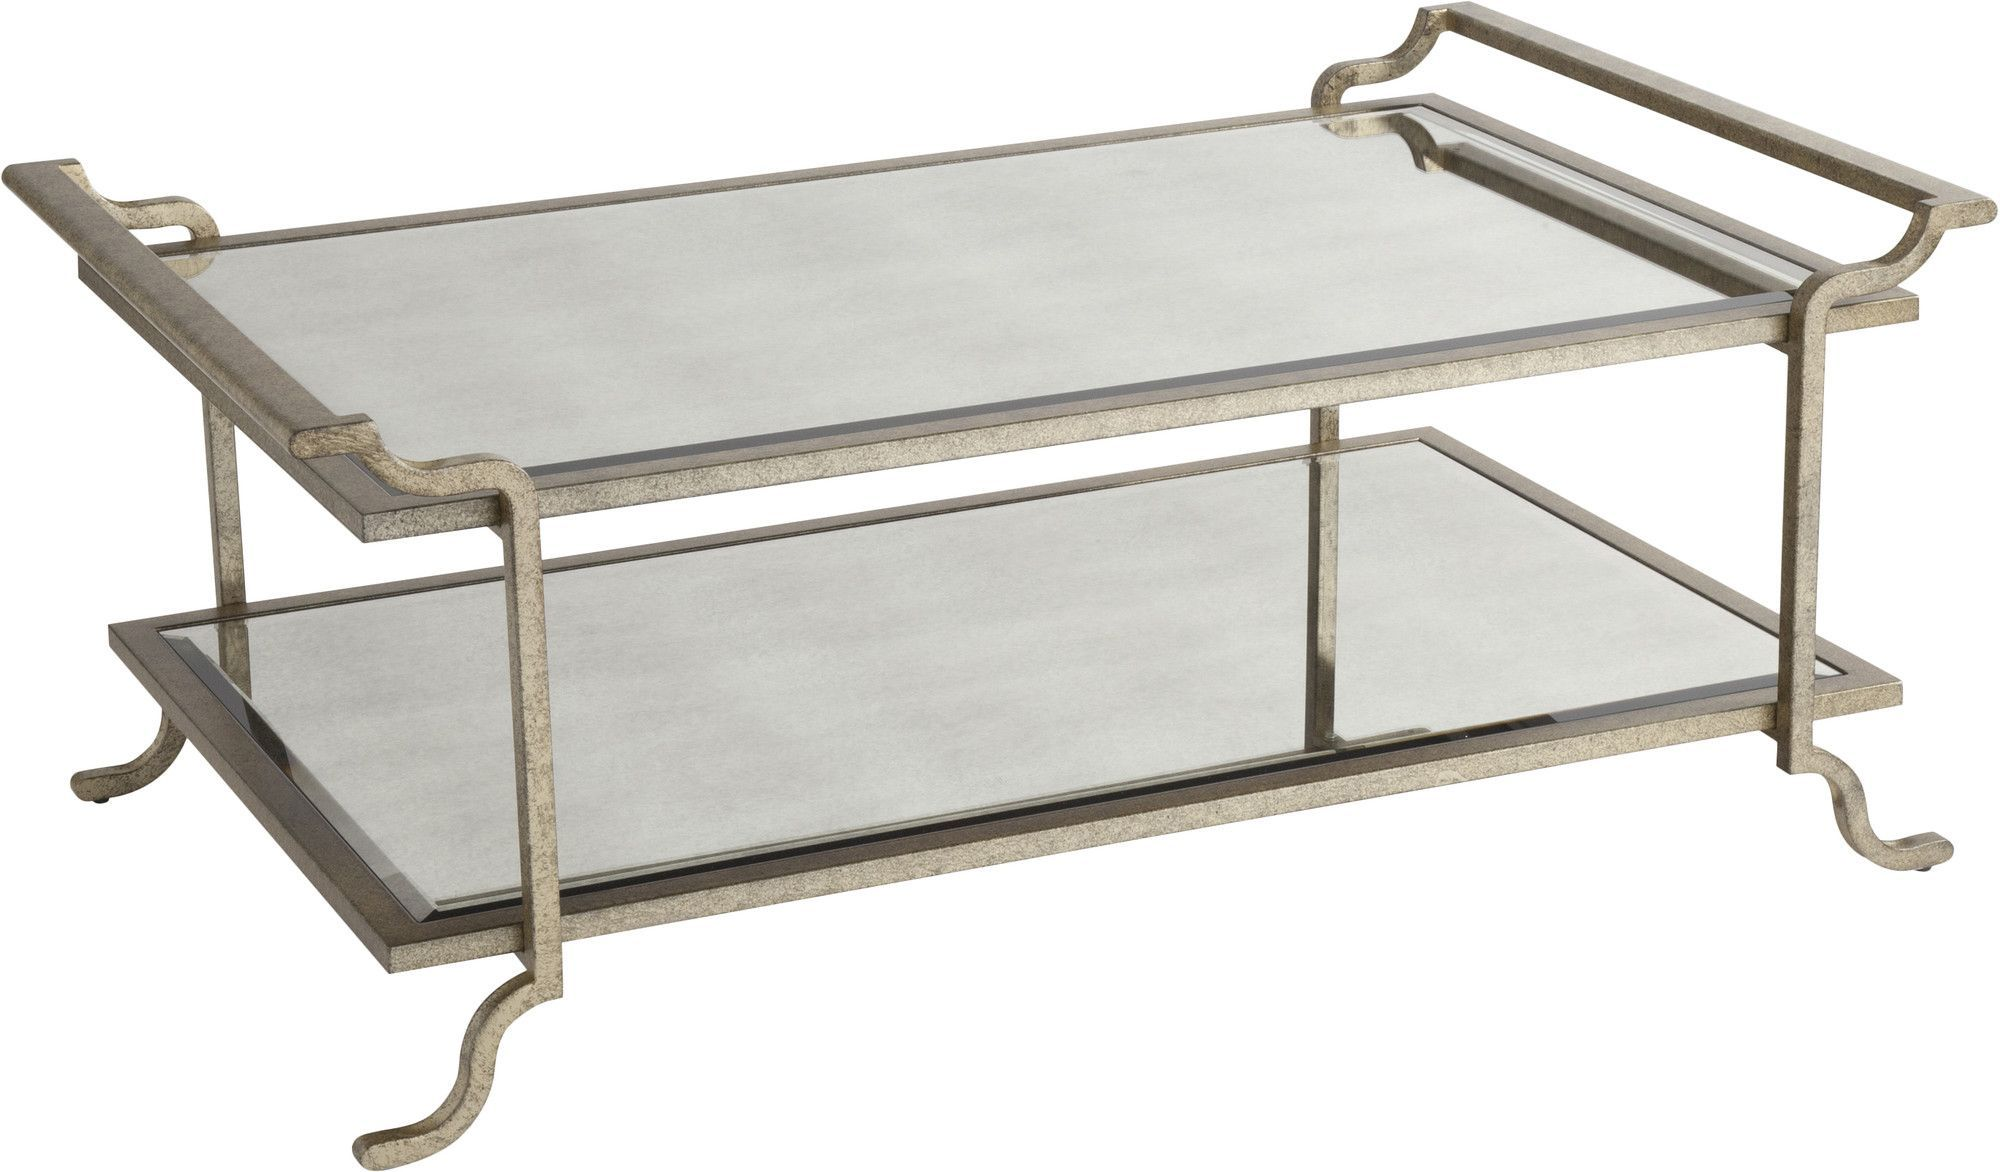 Gatsby coffee table products pinterest gatsby and products